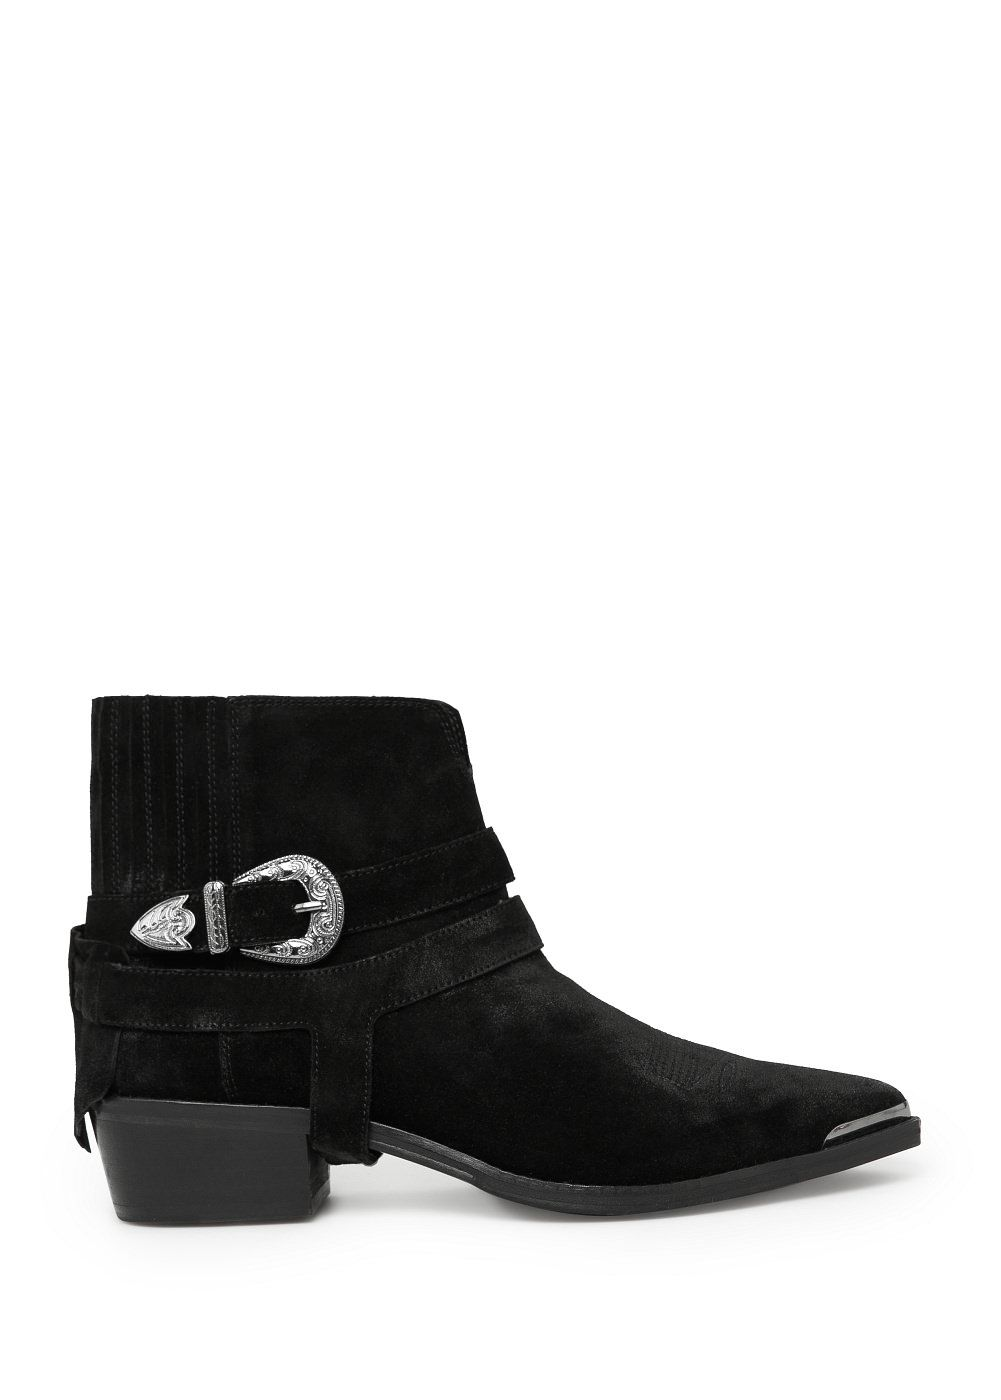 Mango buckle suede ankle boots